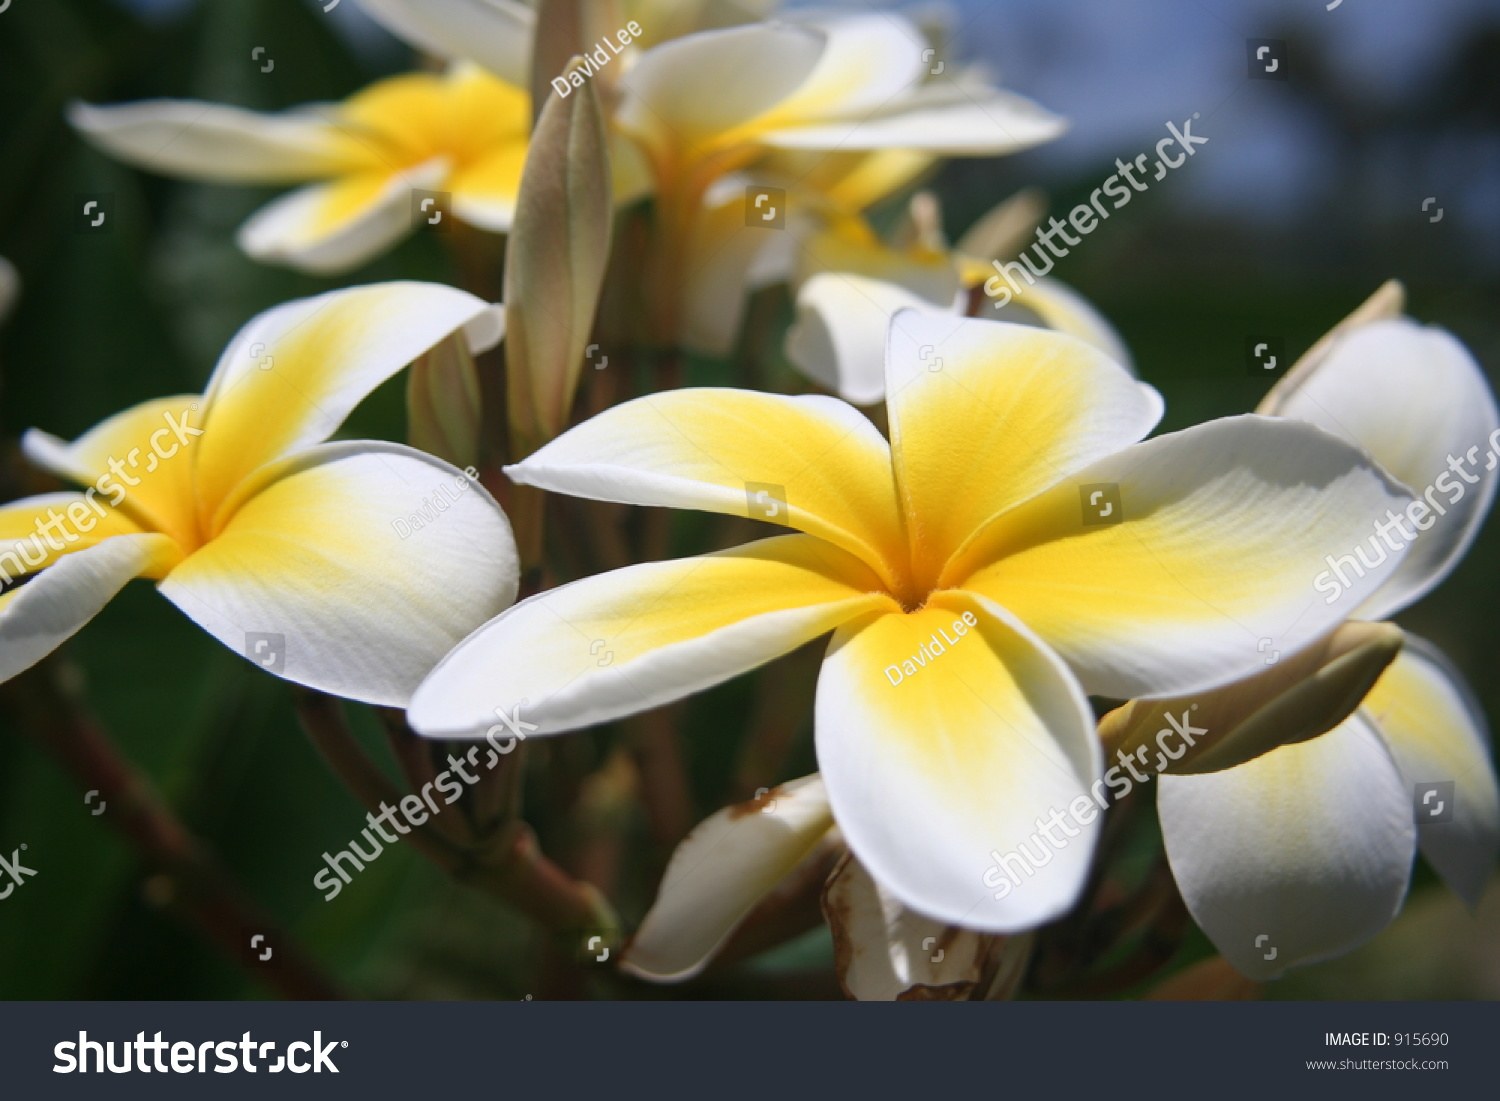 Soft yellow hawaiian plumeria flowers stock photo 915690 shutterstock soft yellow hawaiian plumeria flowers izmirmasajfo Choice Image